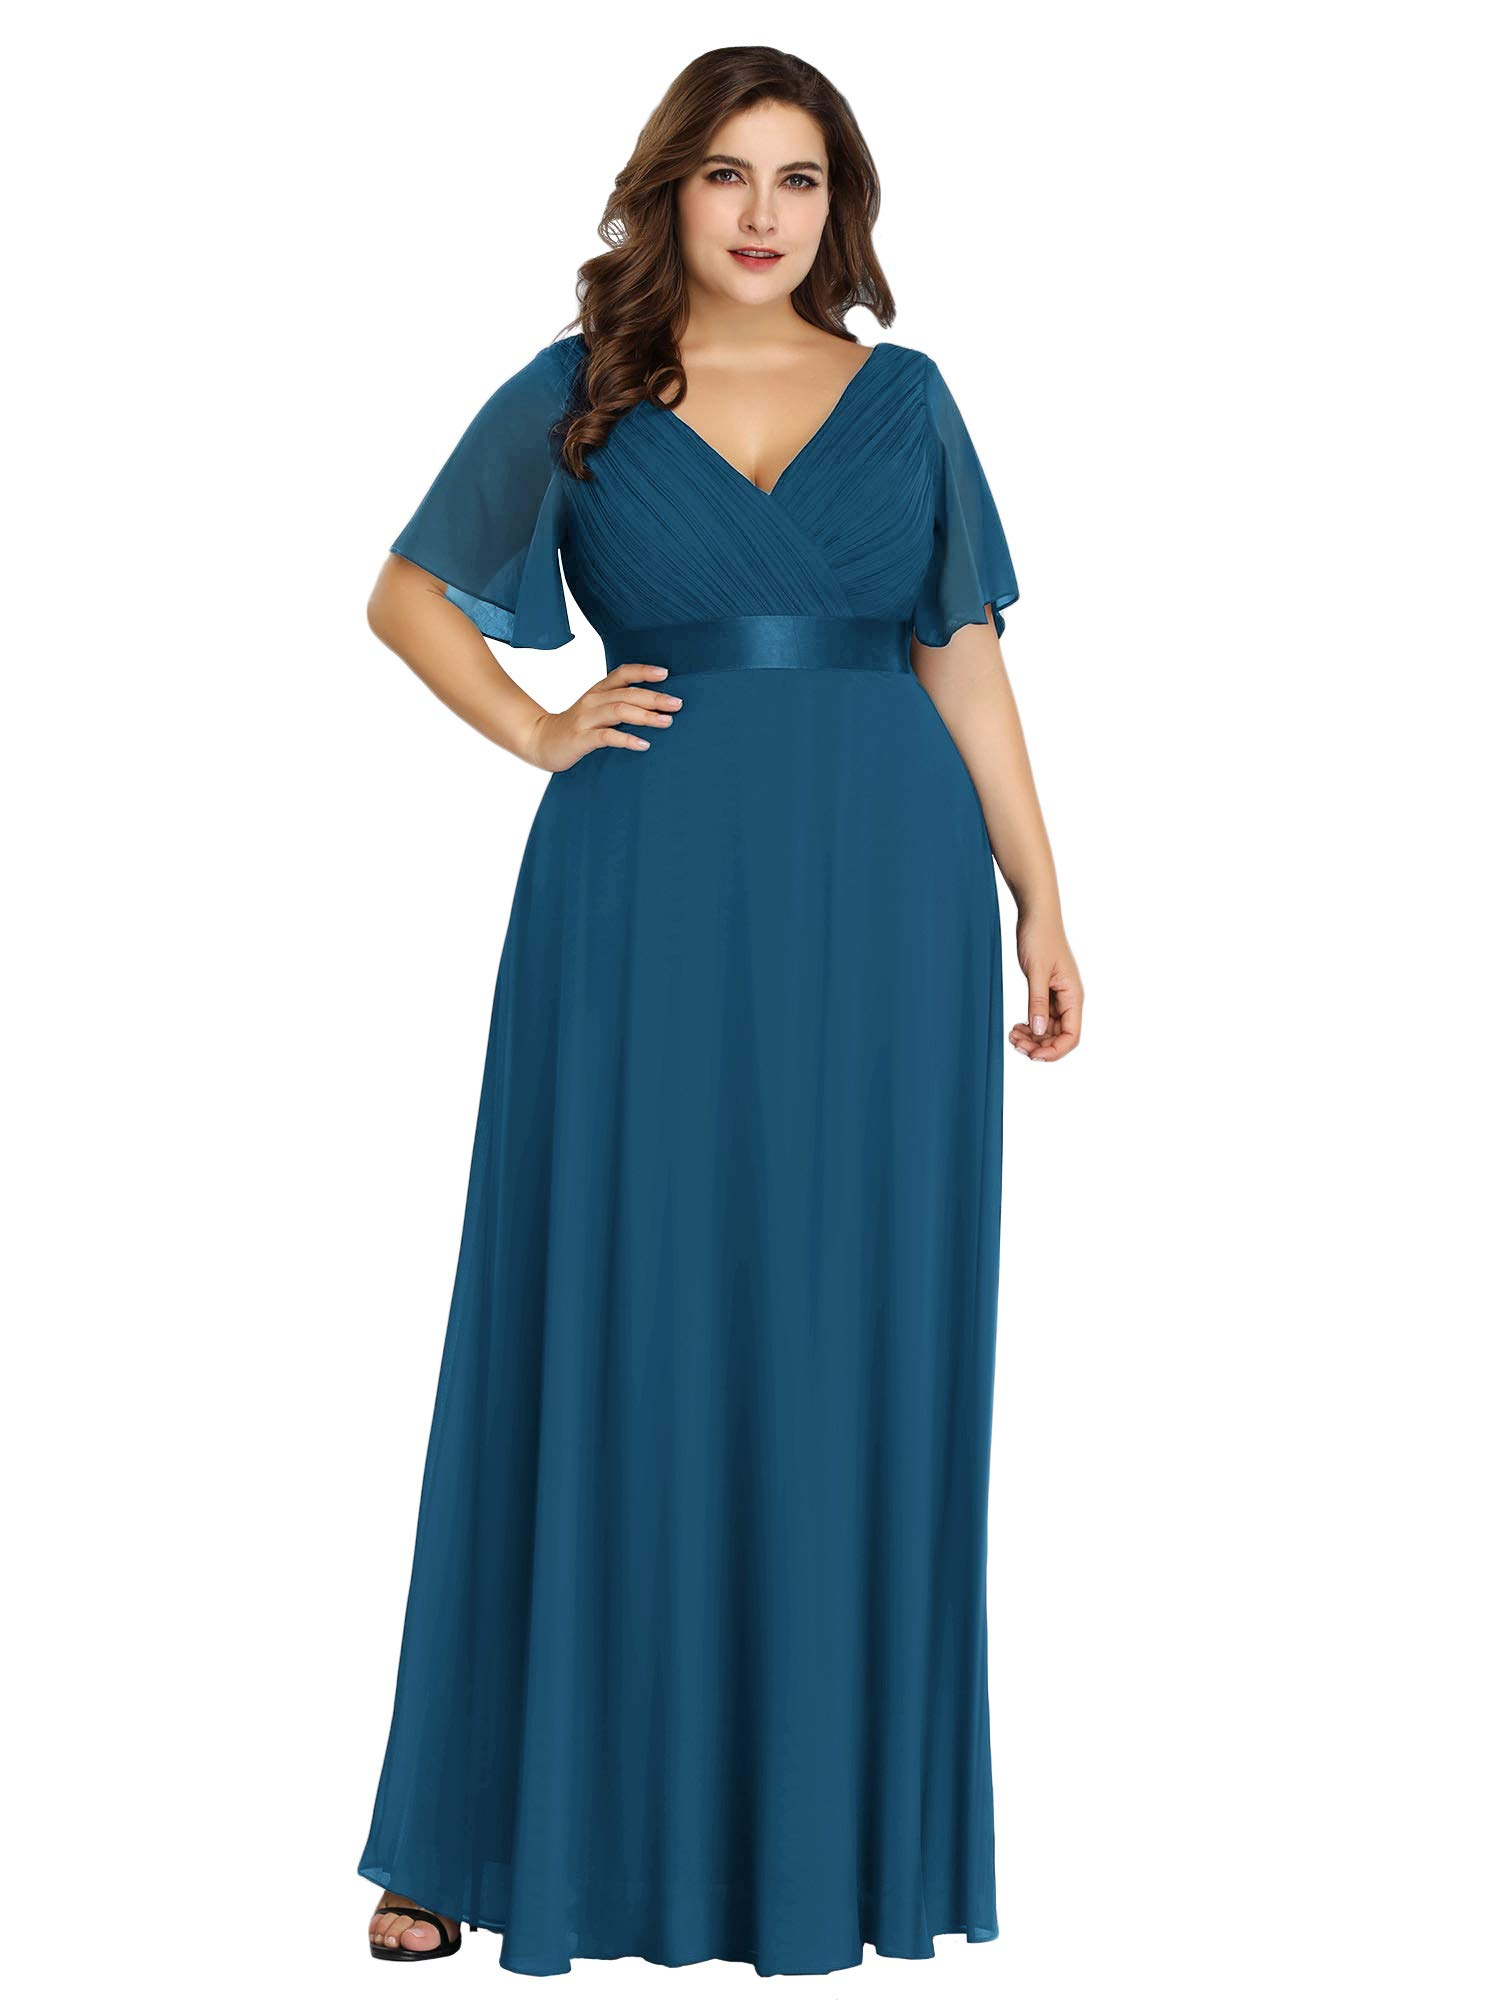 Alisapan Womens A-Line Bridesmaid Dress Plus Size Formal Evening Dresses  Teal US20